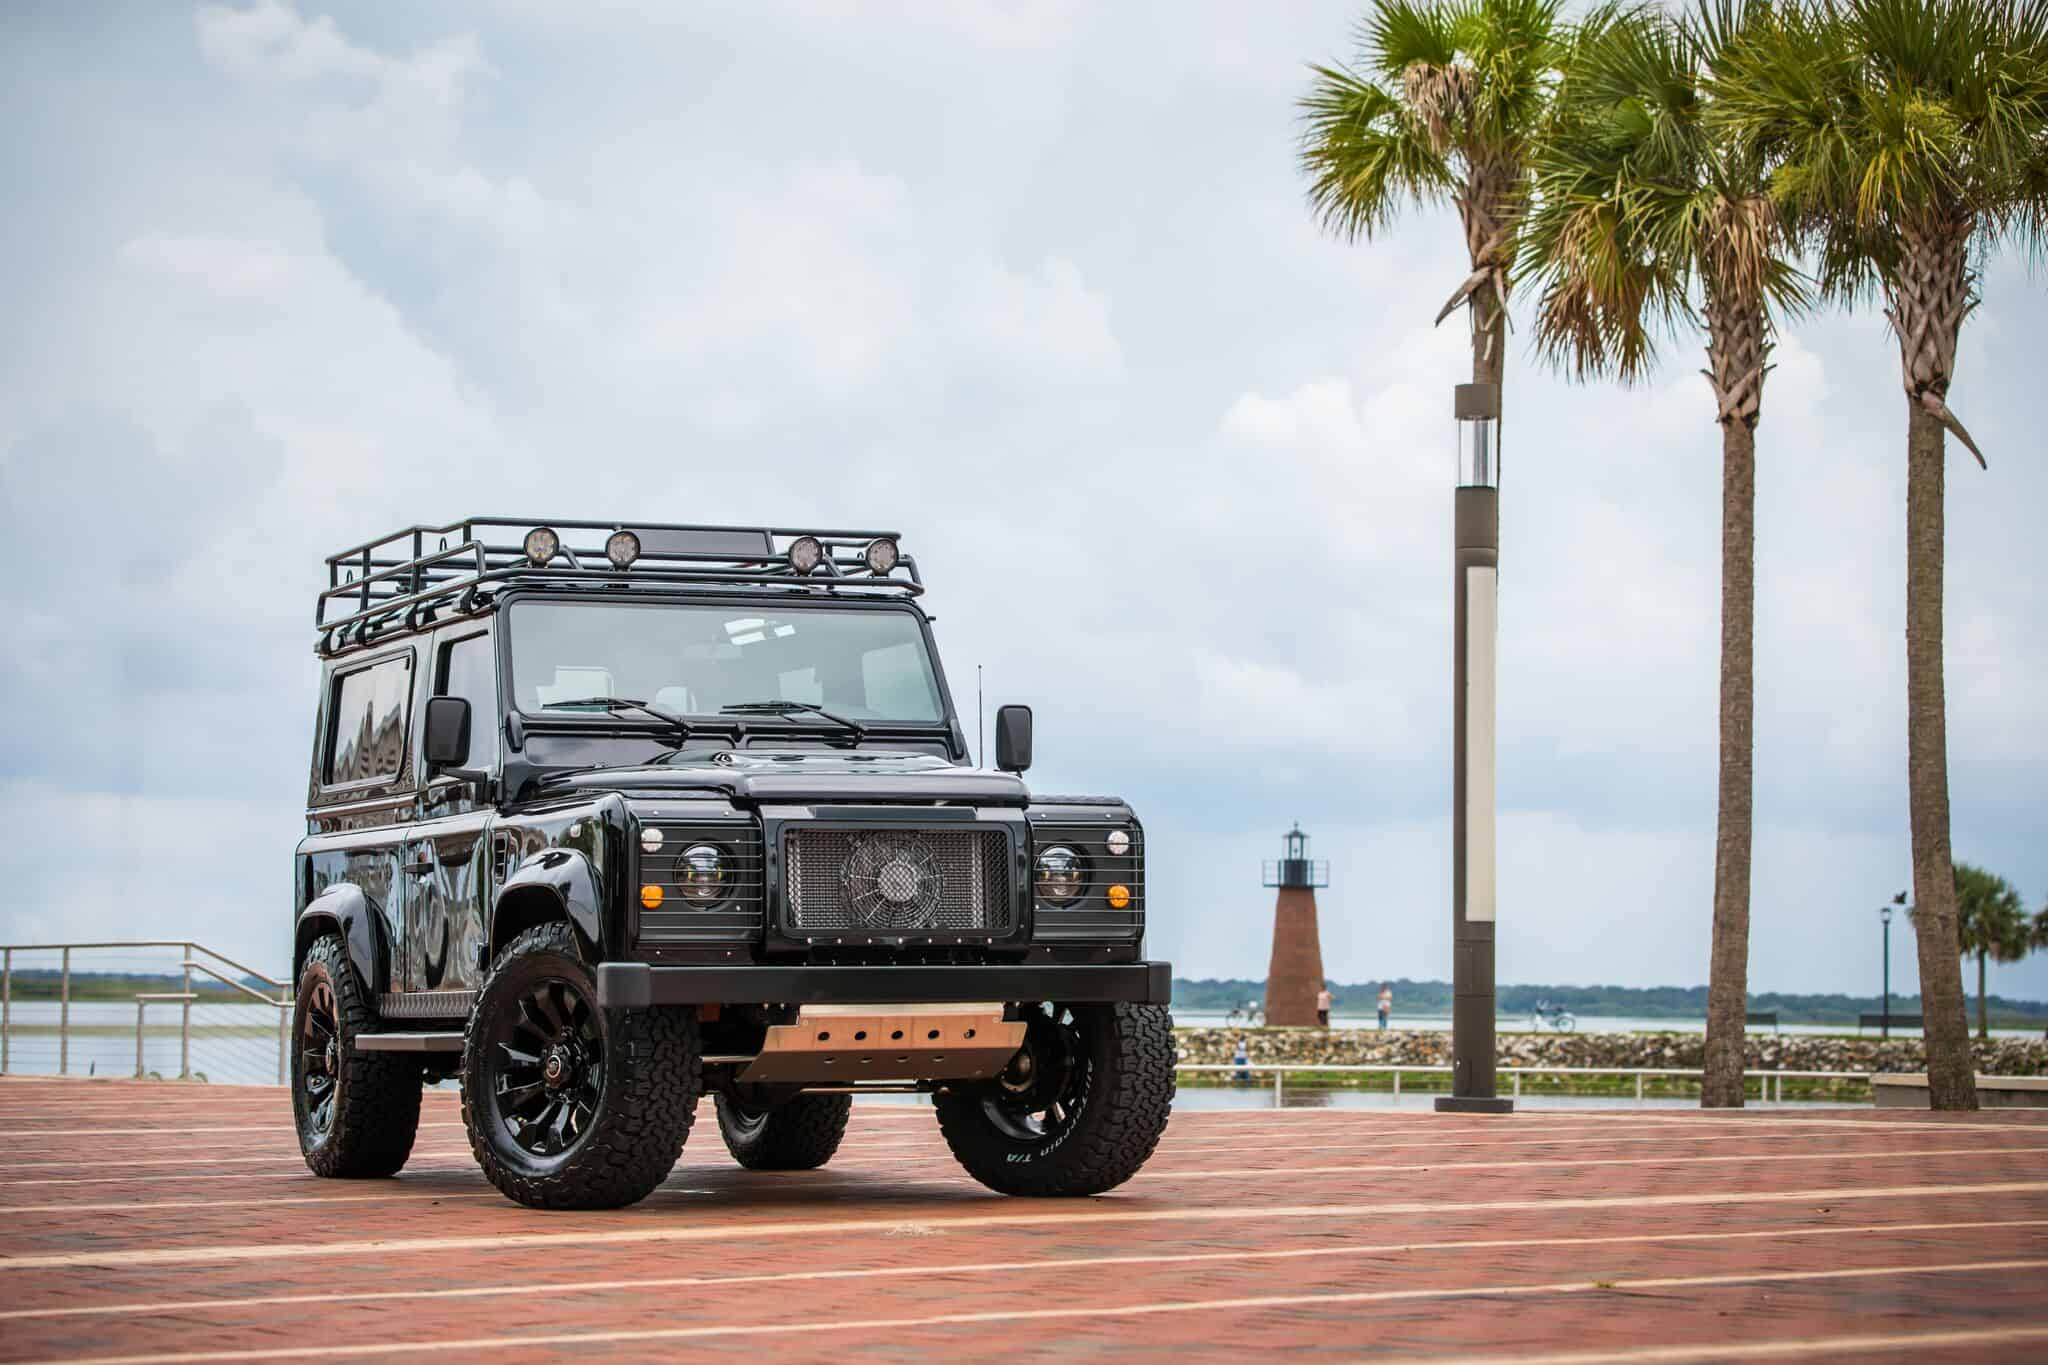 Project Blackout Defender 90 A 326 hp Daily Driver Machine by EDC